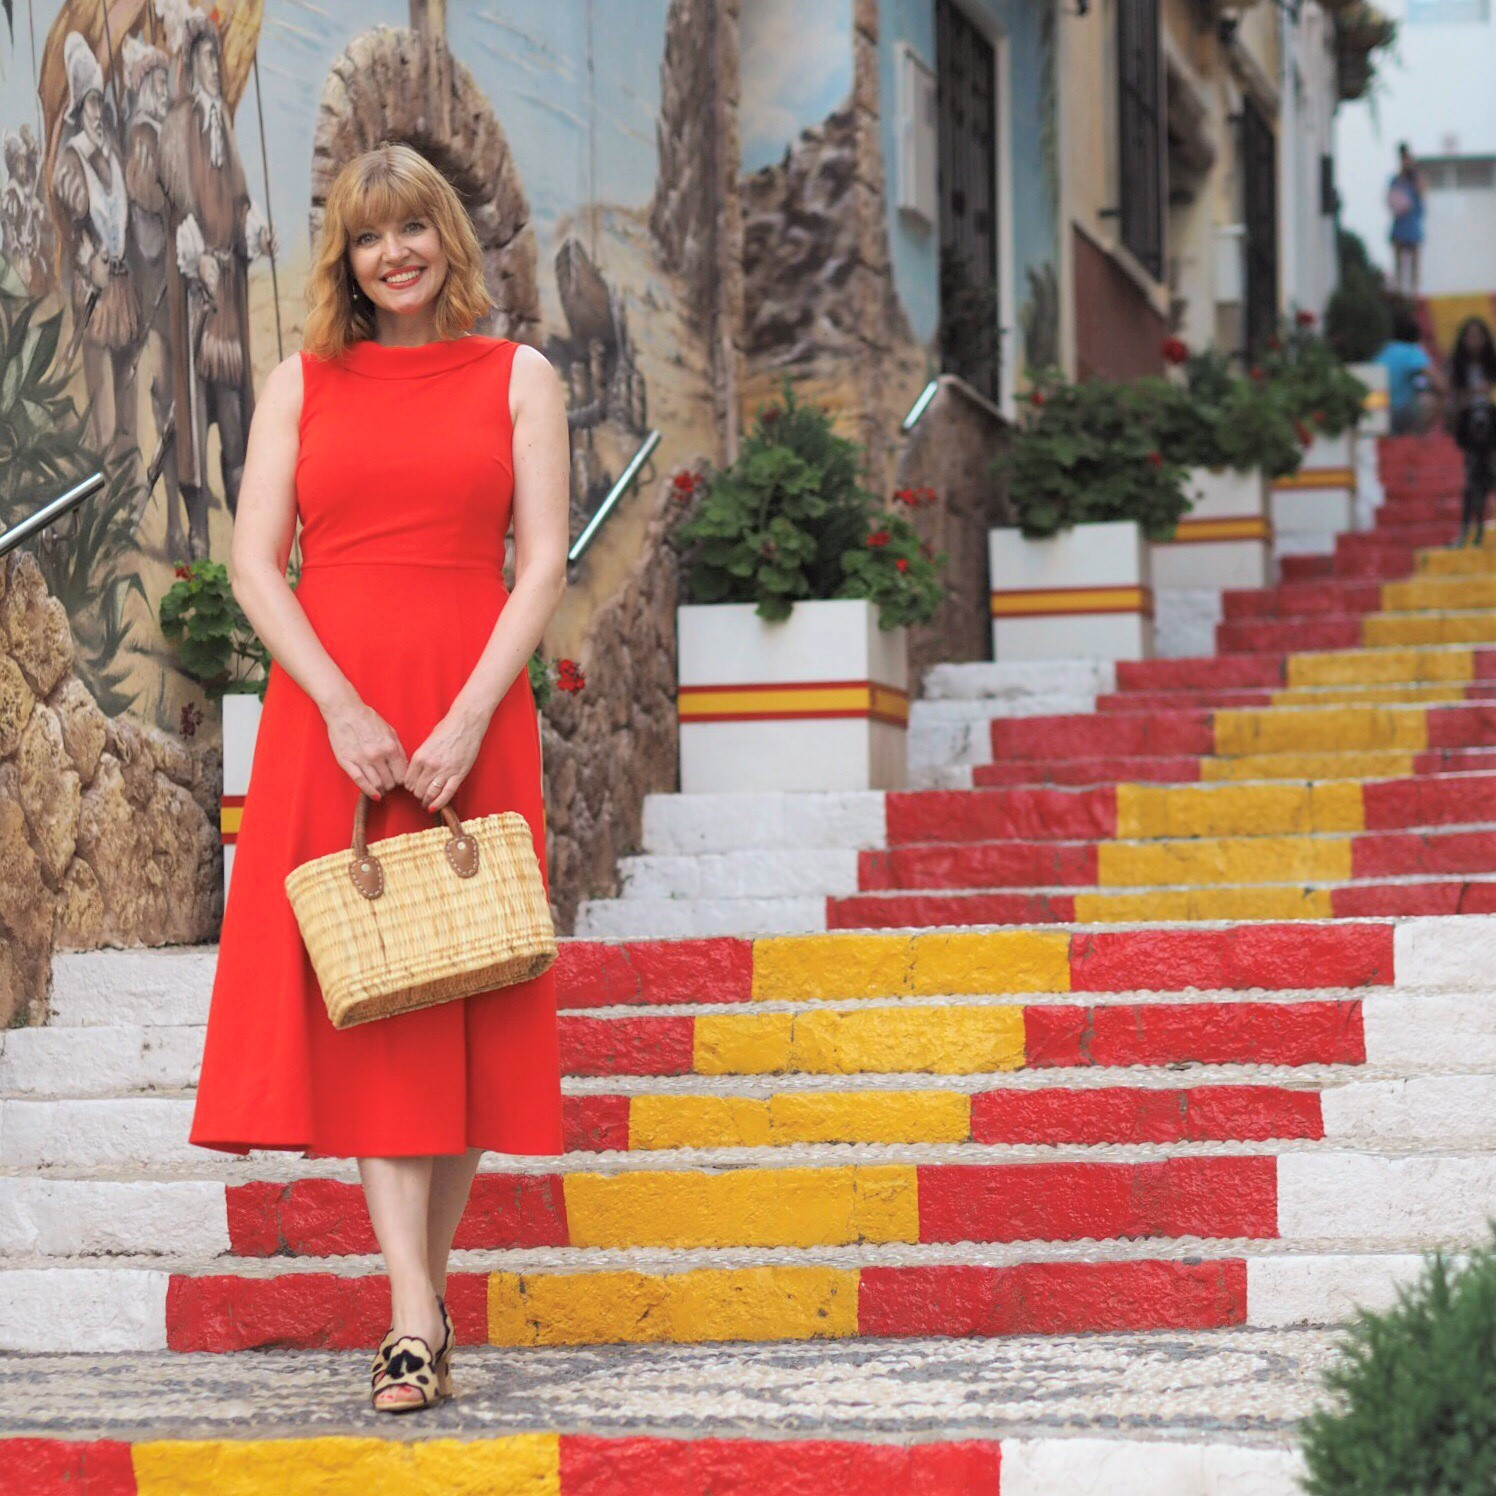 Red steps of Calpe and red dress 5